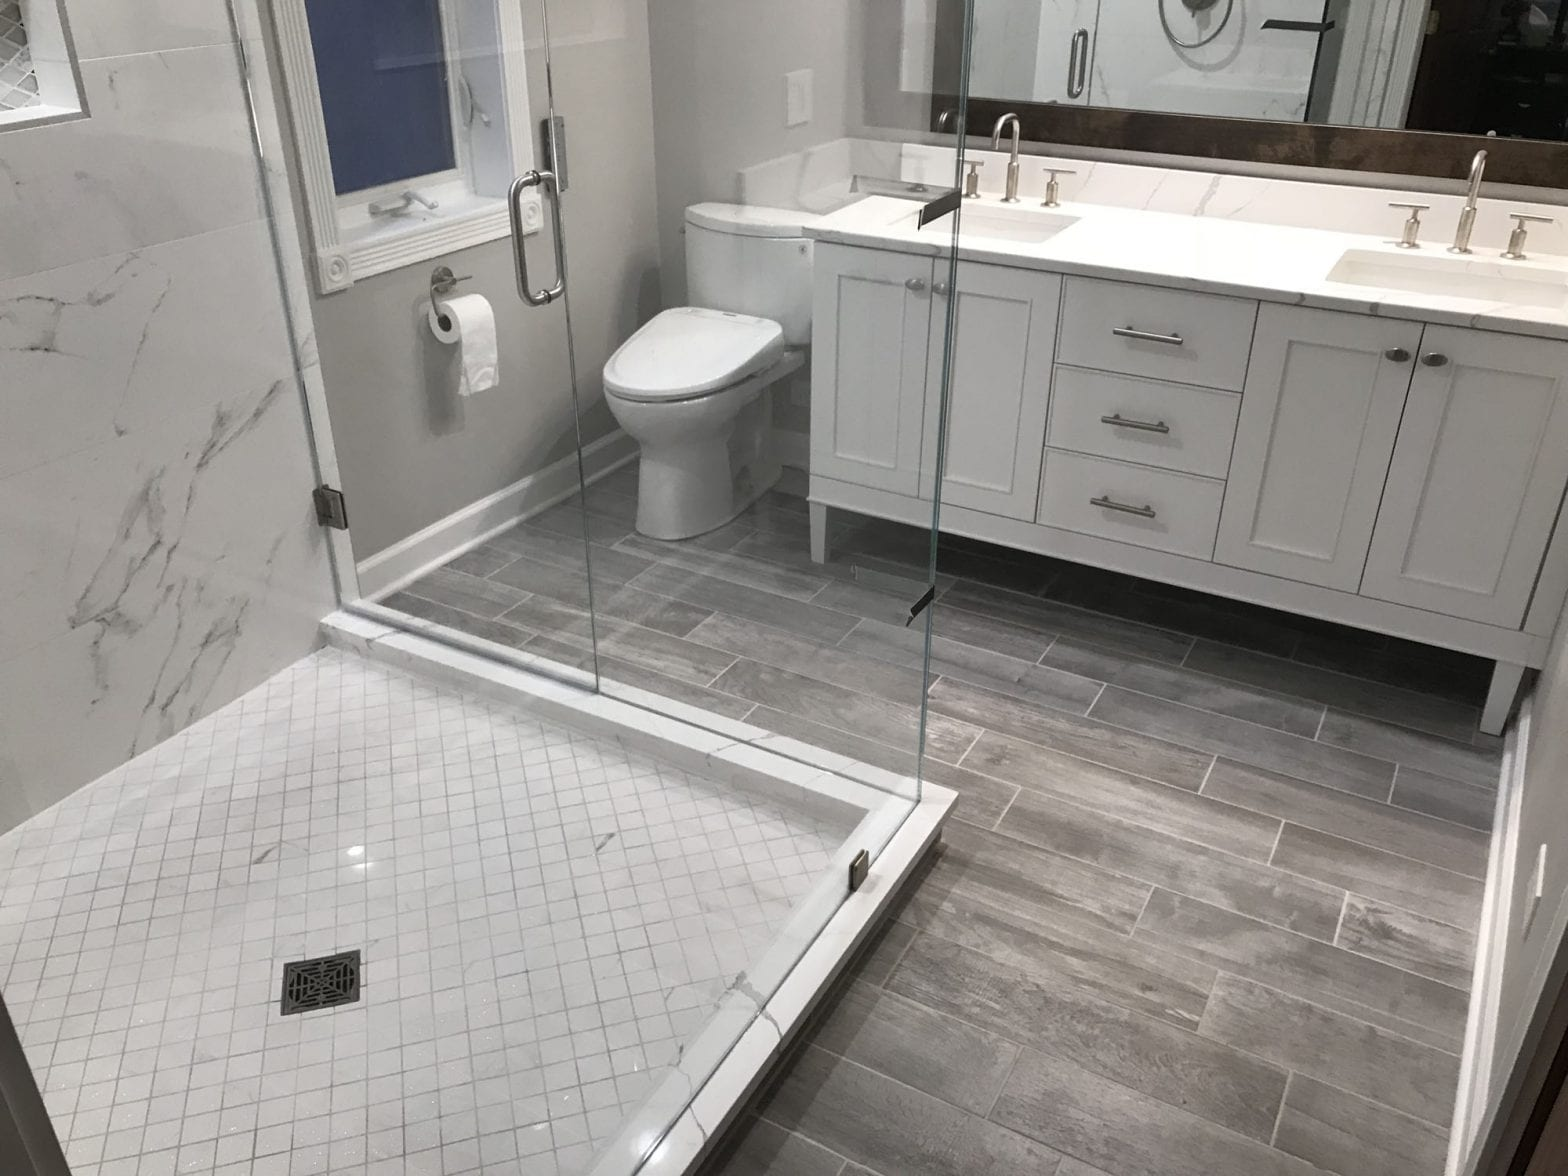 Master Bathroom Remodeling in Morton Grove - new shower, flooring, cabinets, countertops